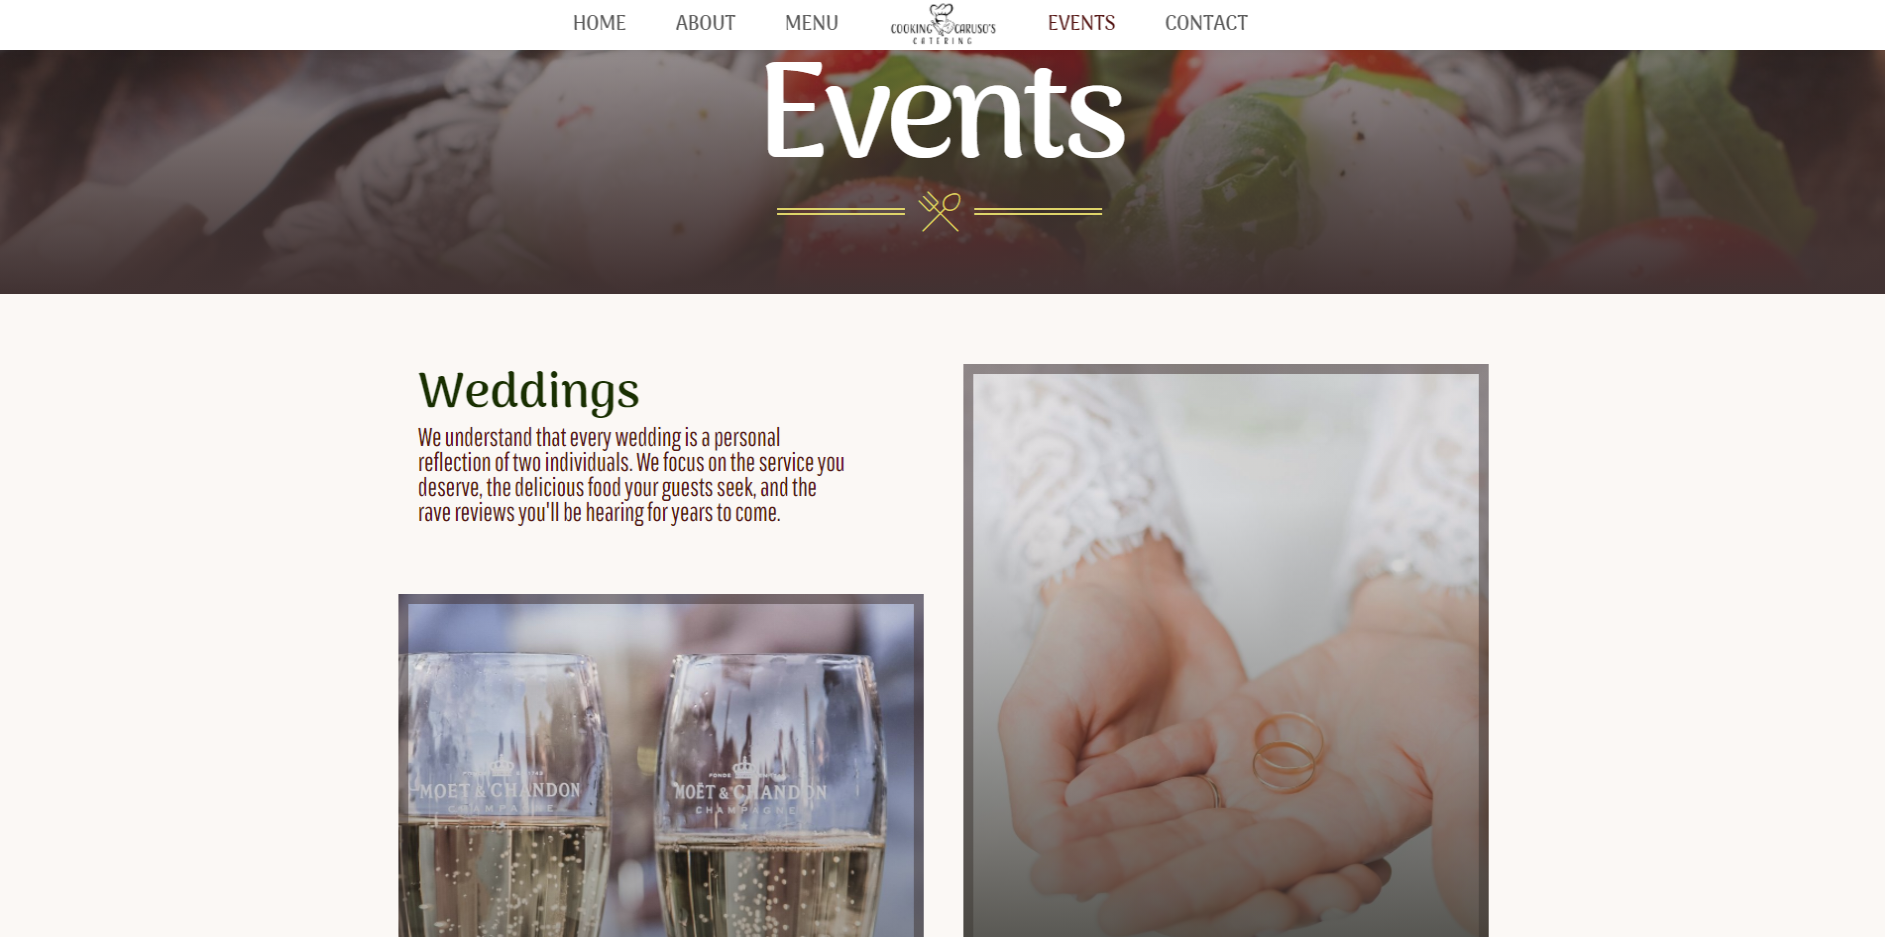 online ordering website, cooking carusos catering, events